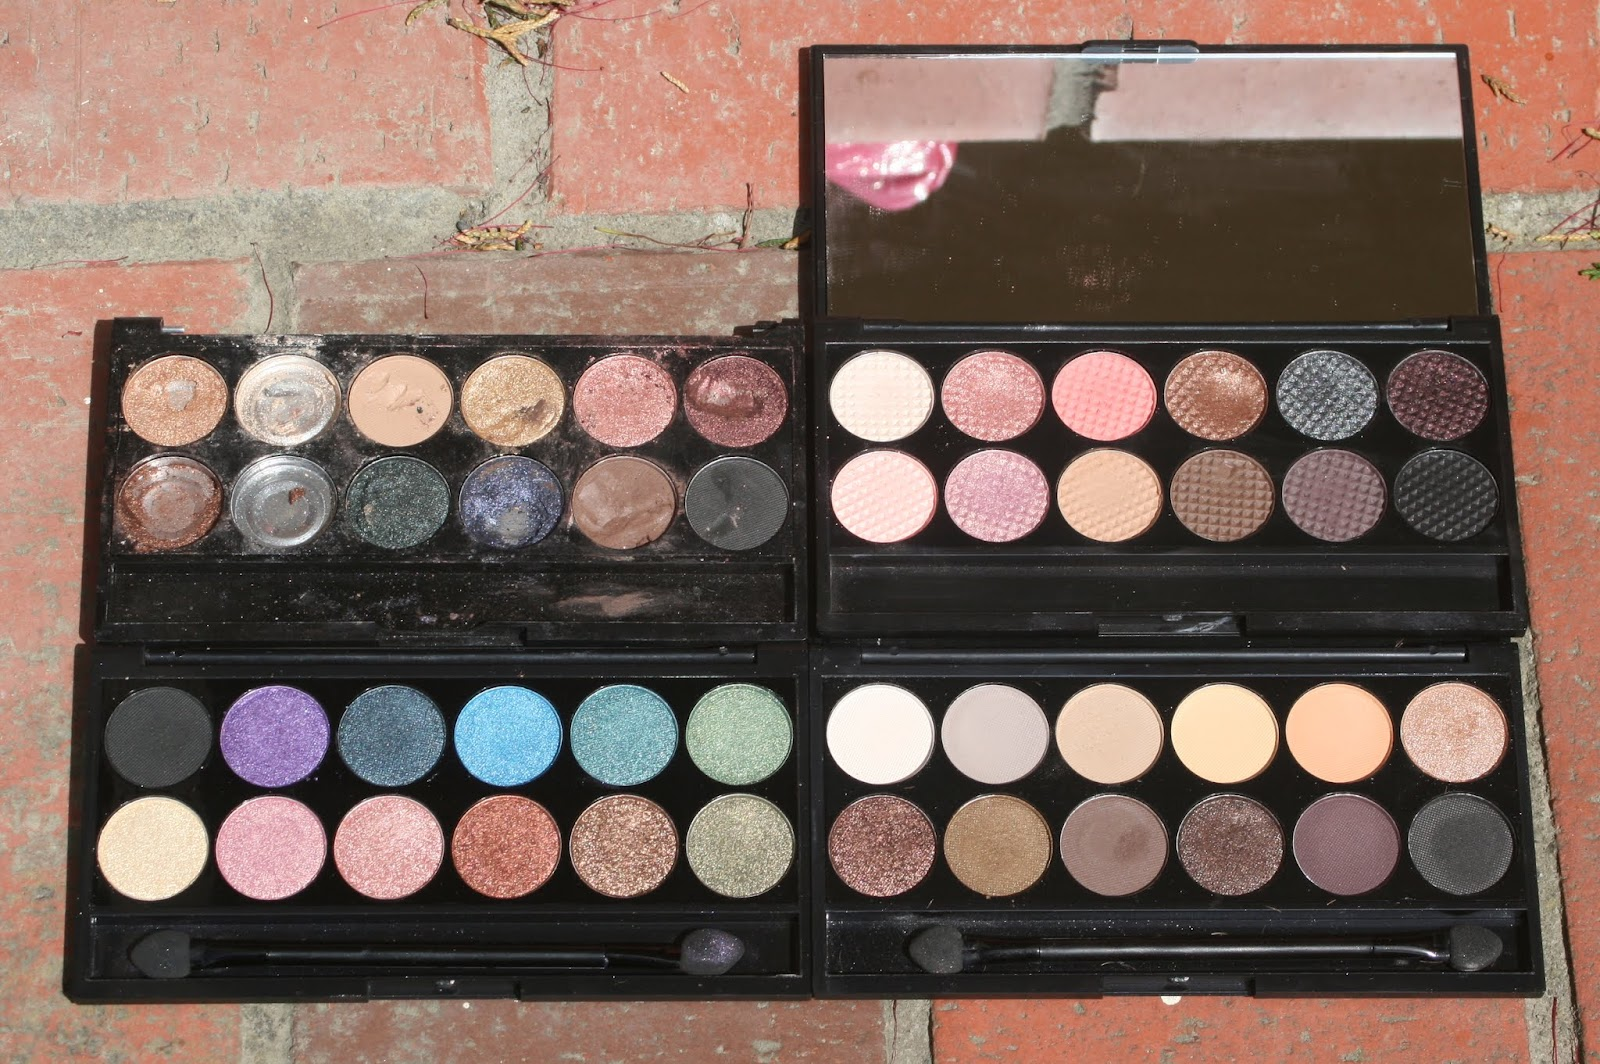 Sleek palettes - Storm, Oh So Special, Original and Au Naturel